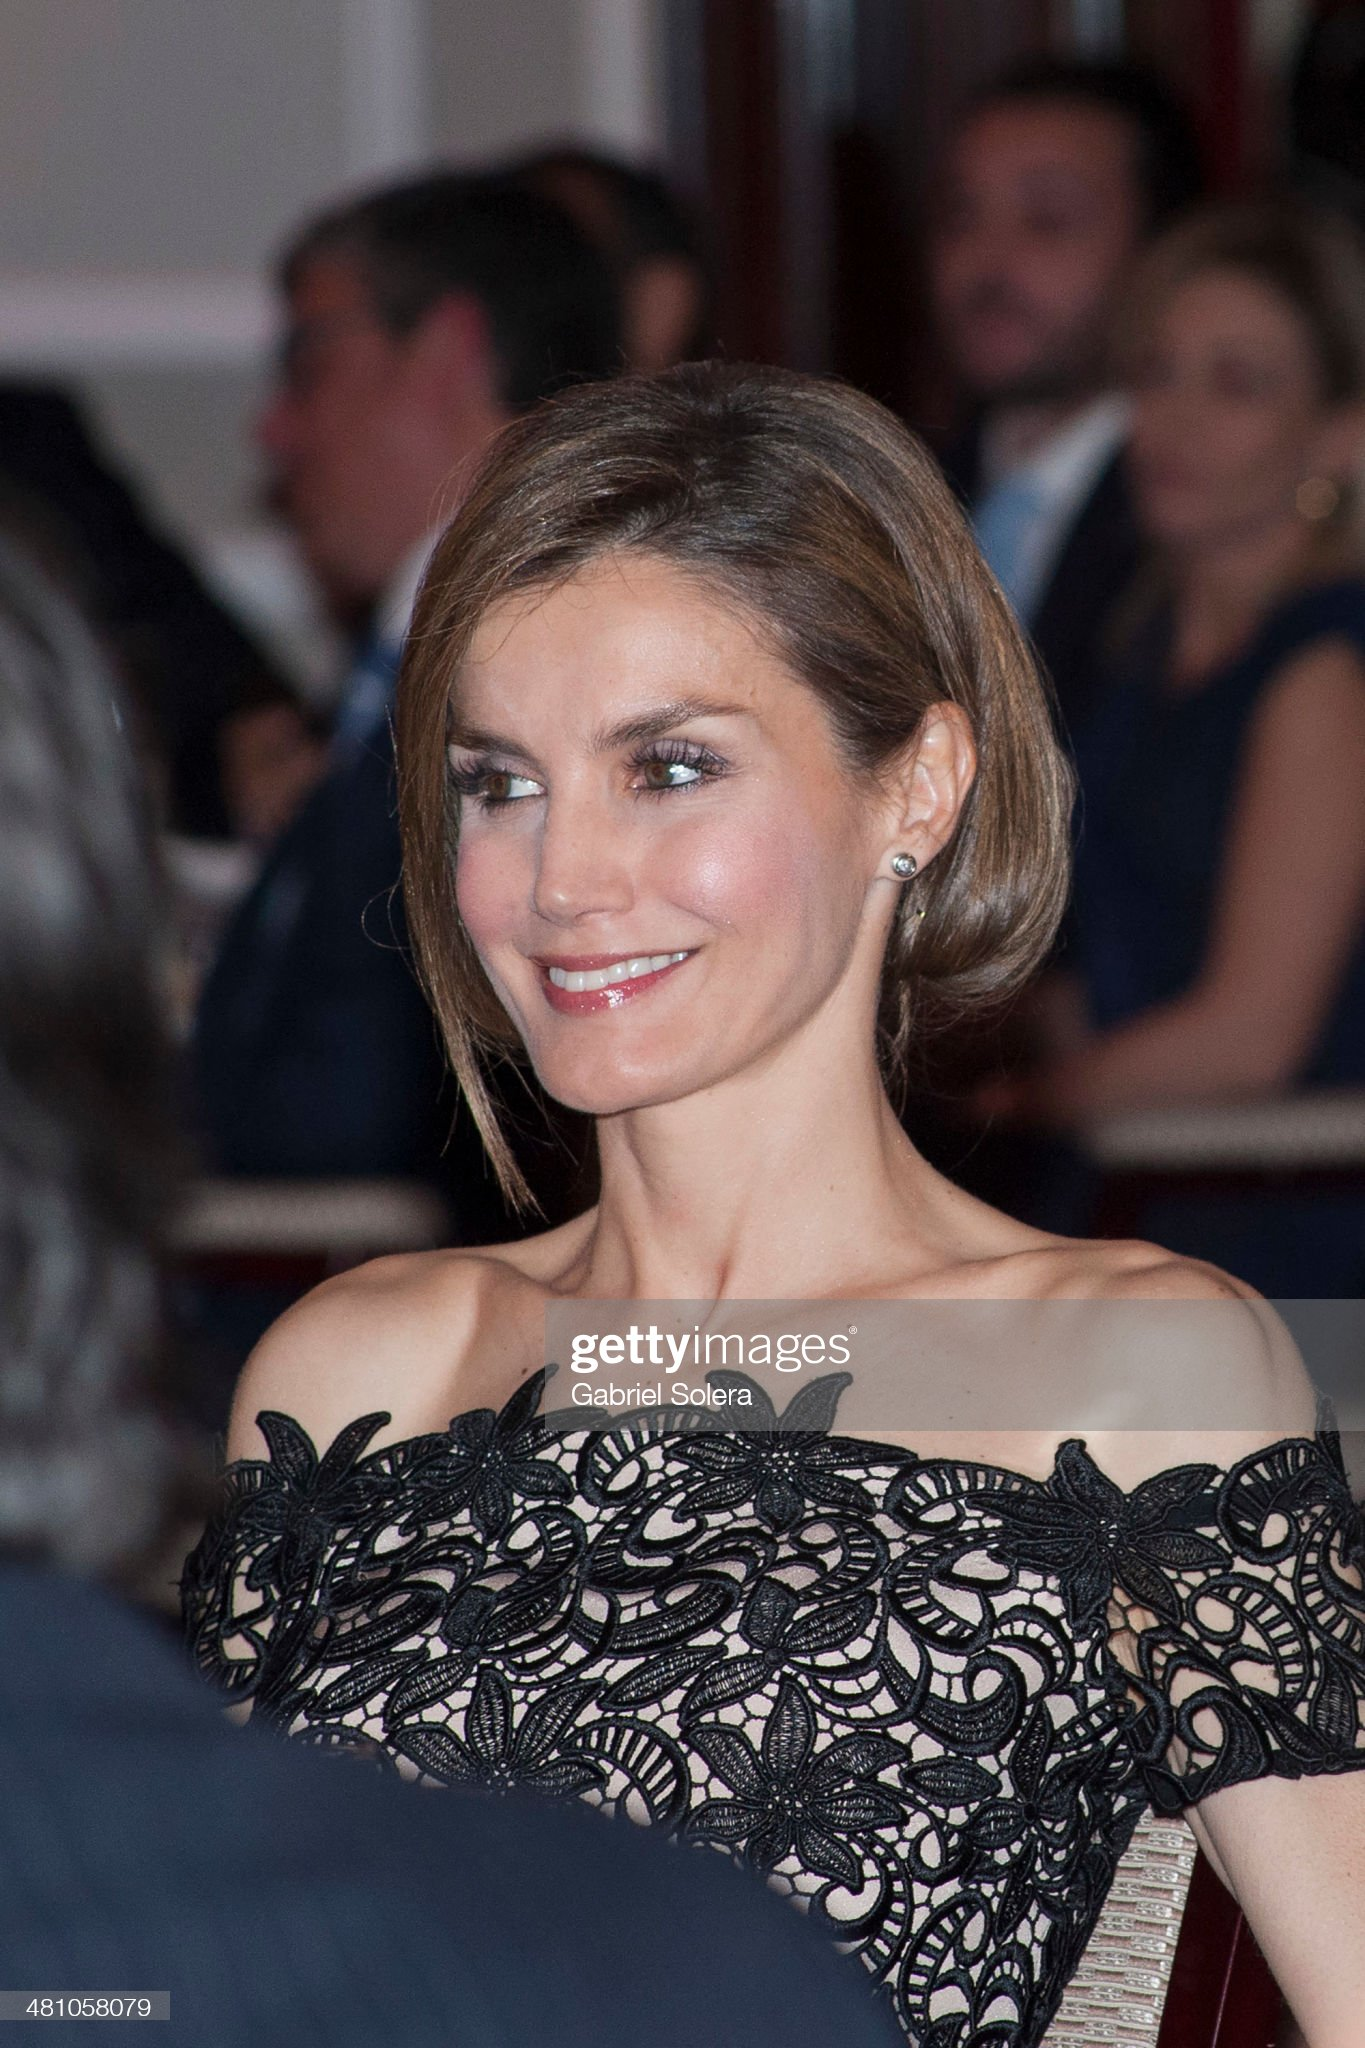 Spanish Royals Attend 'Young Businessman' National Awards 2014 : News Photo